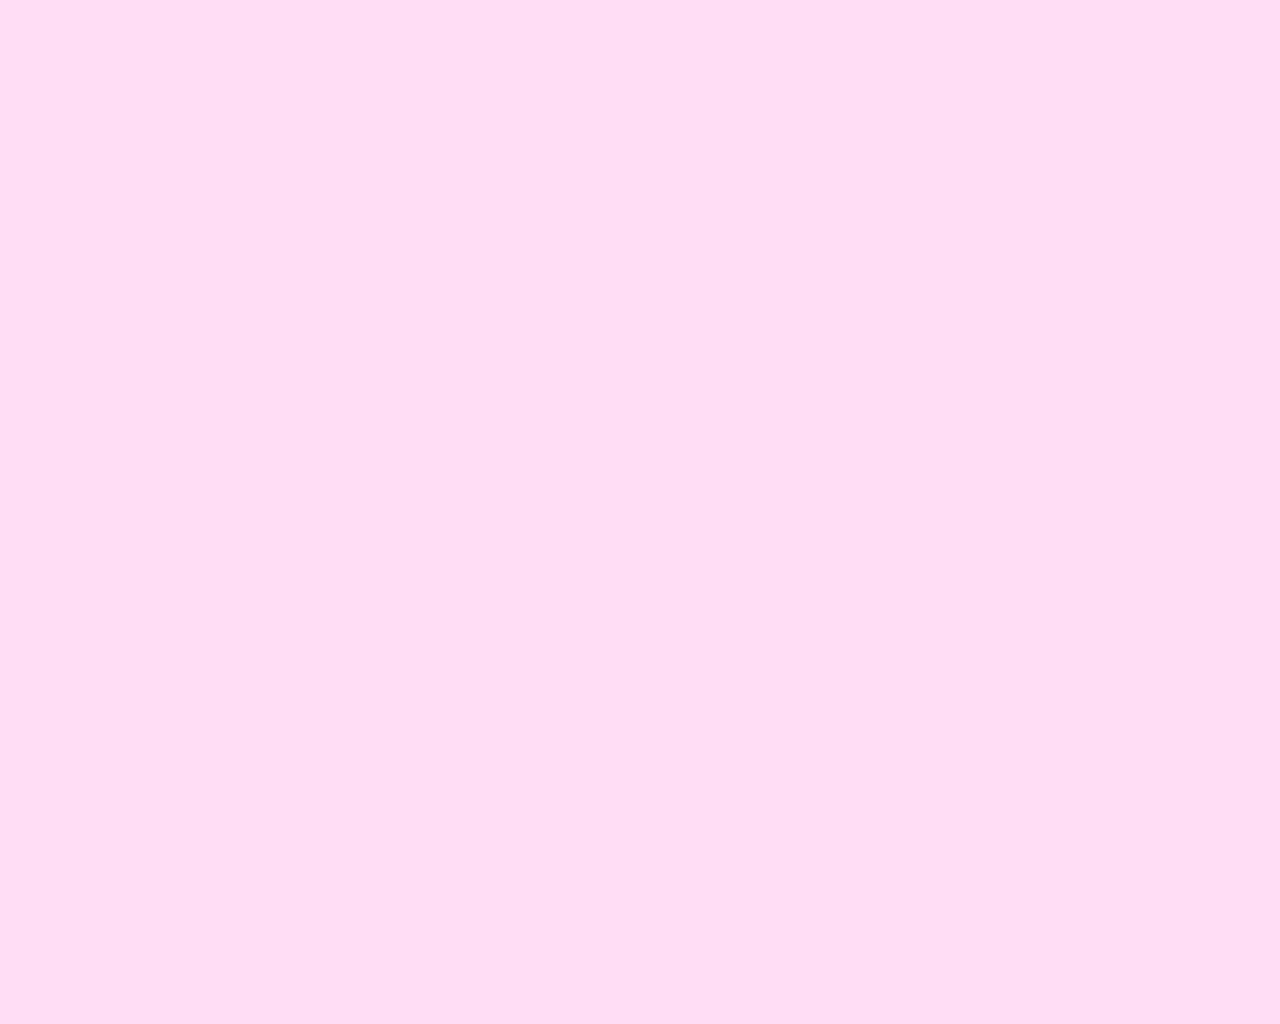 1280x1024 Pink Lace Solid Color Background